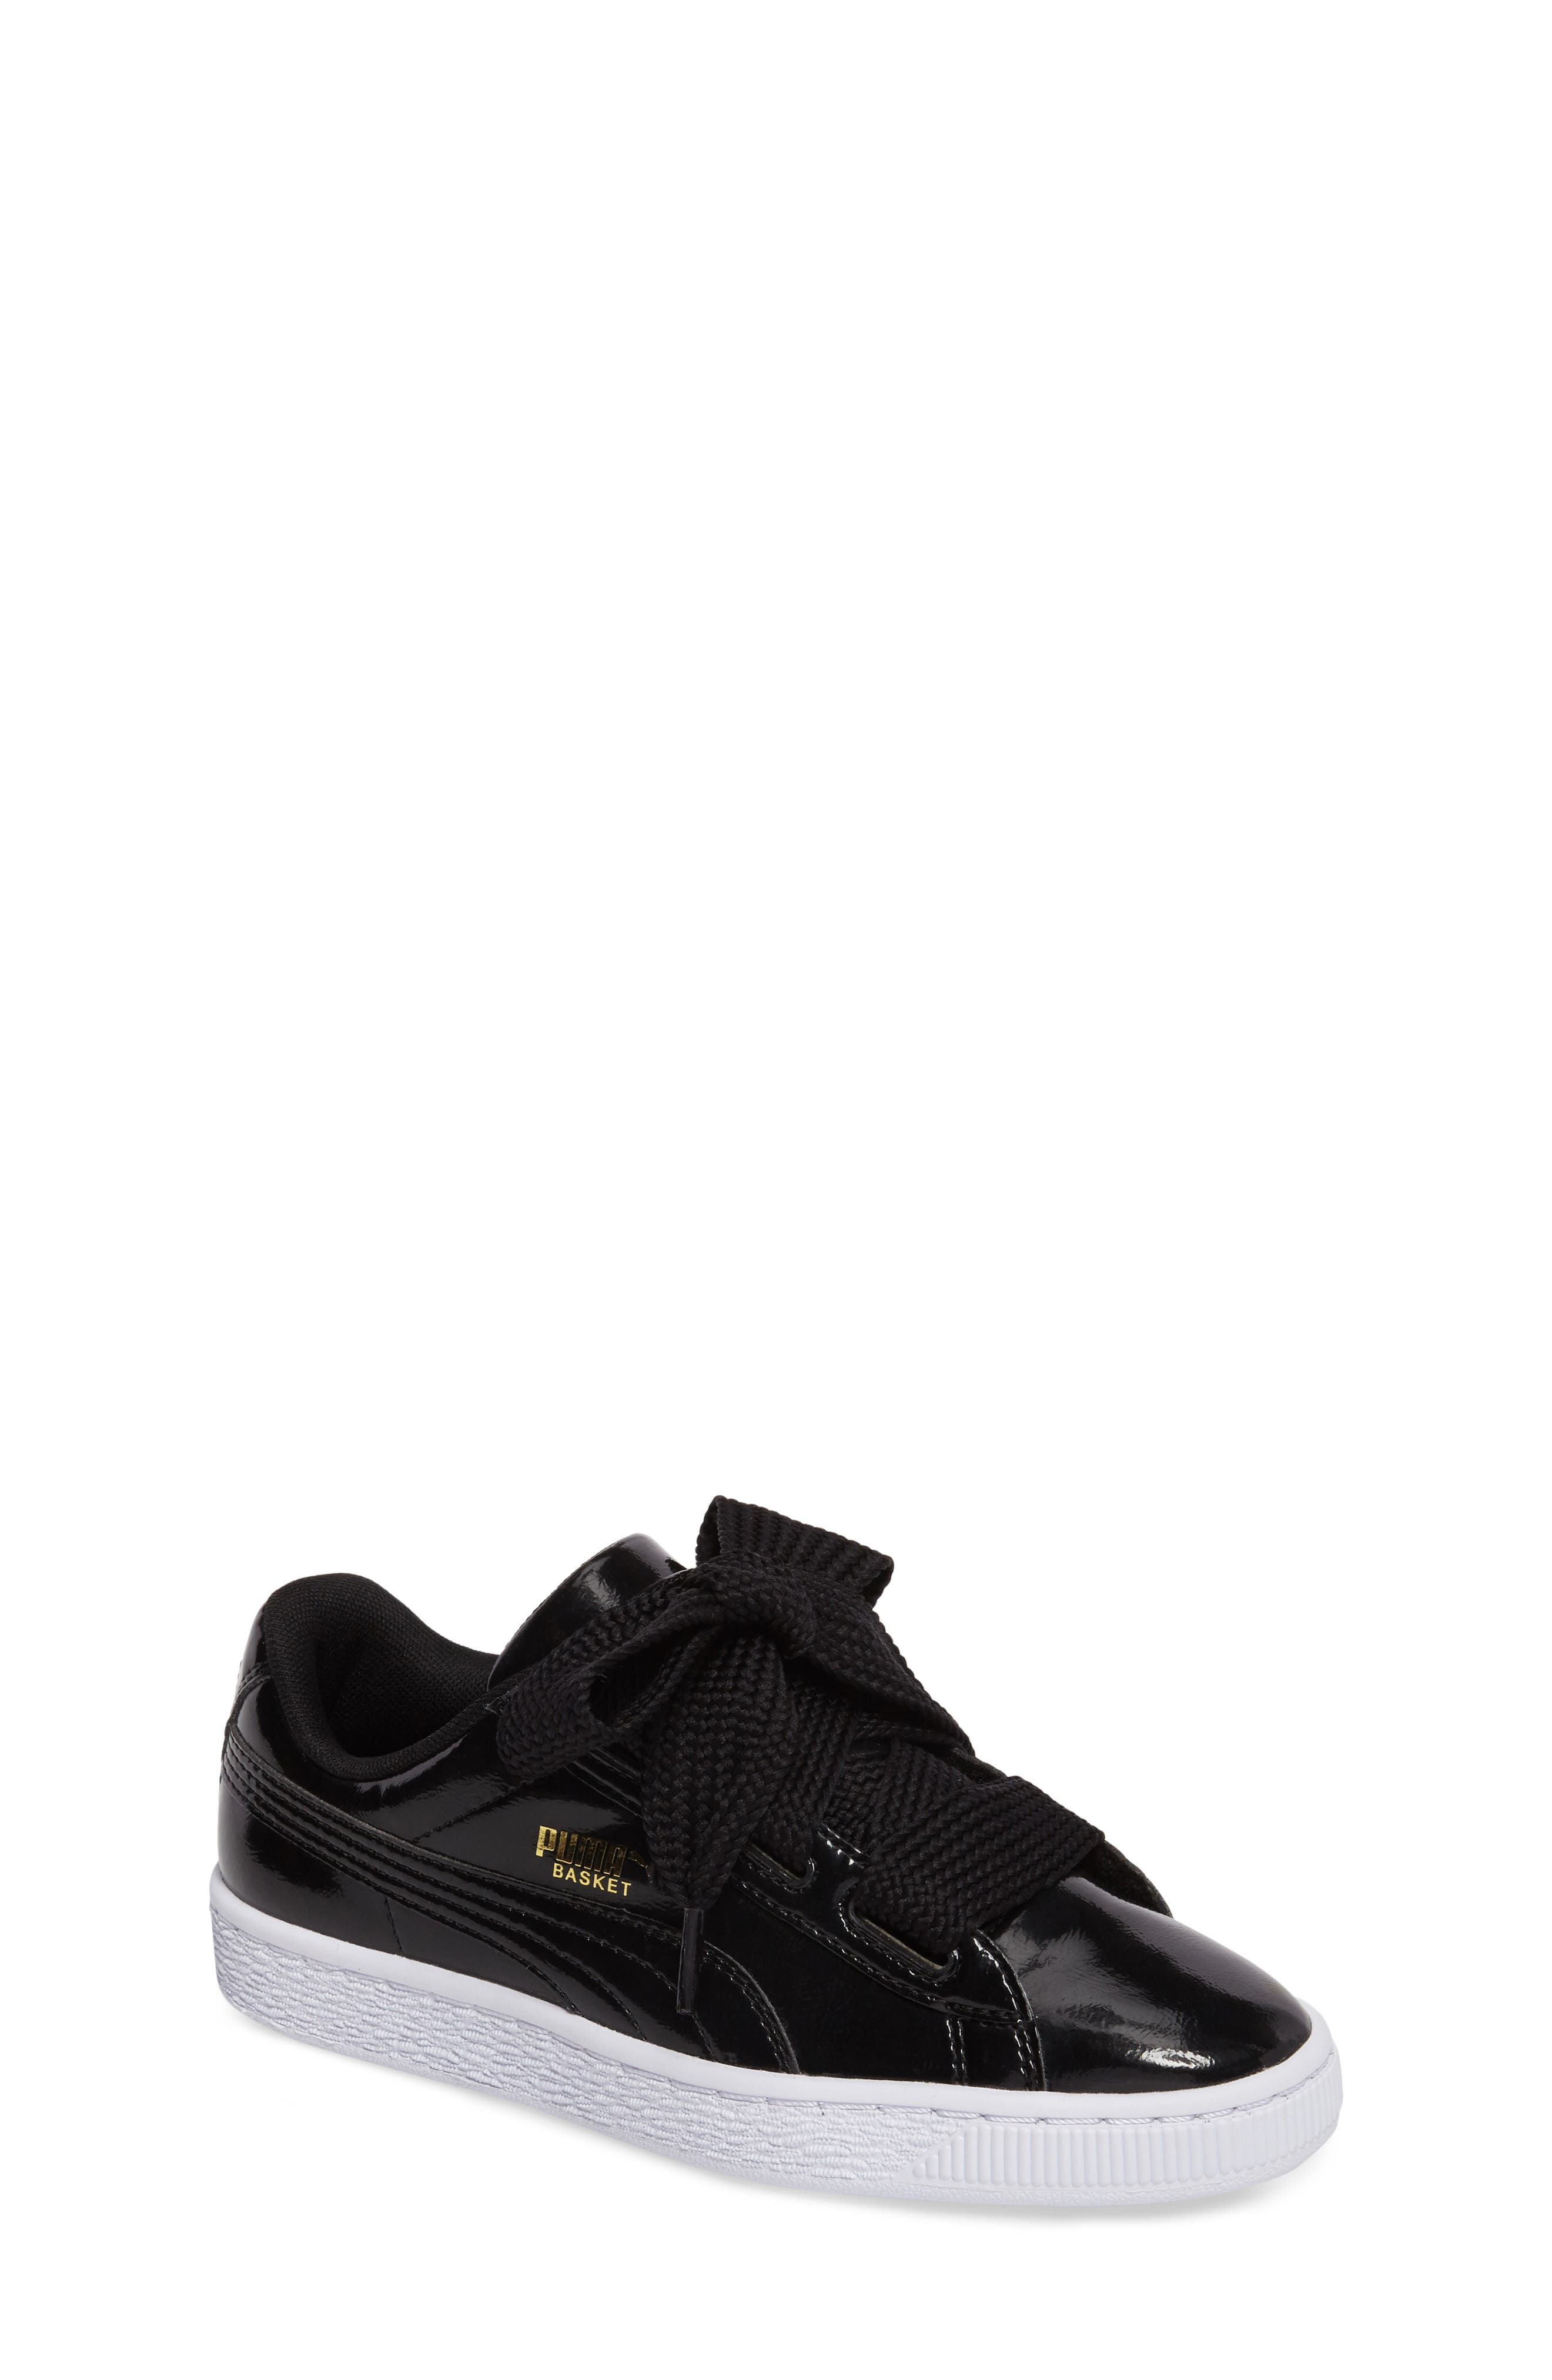 kids black puma shoes